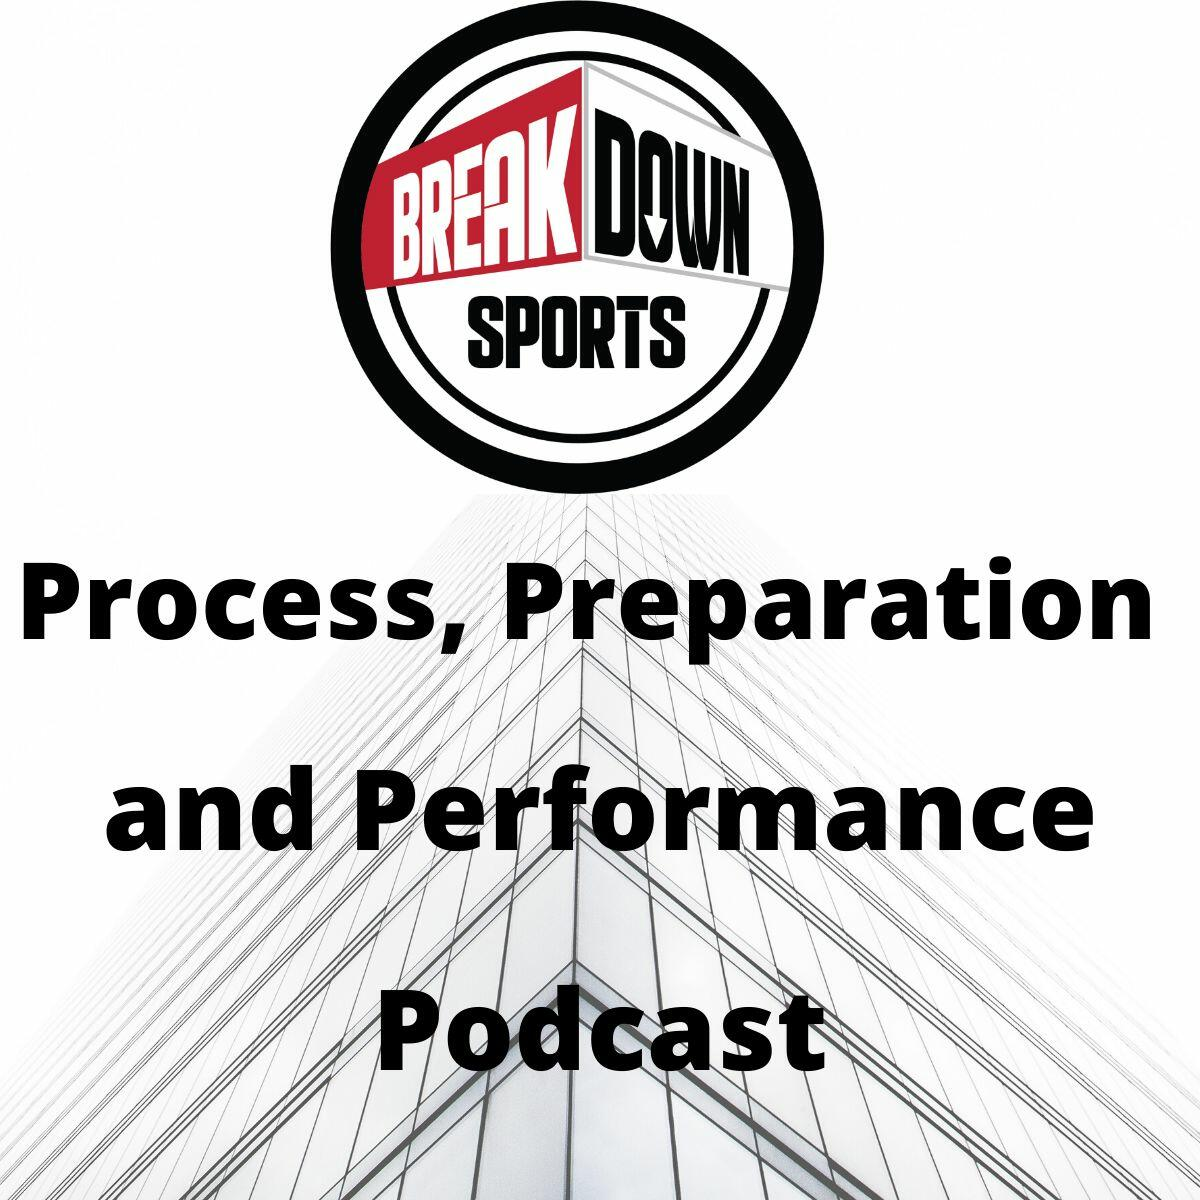 Process, Preparation and Performance Podcast